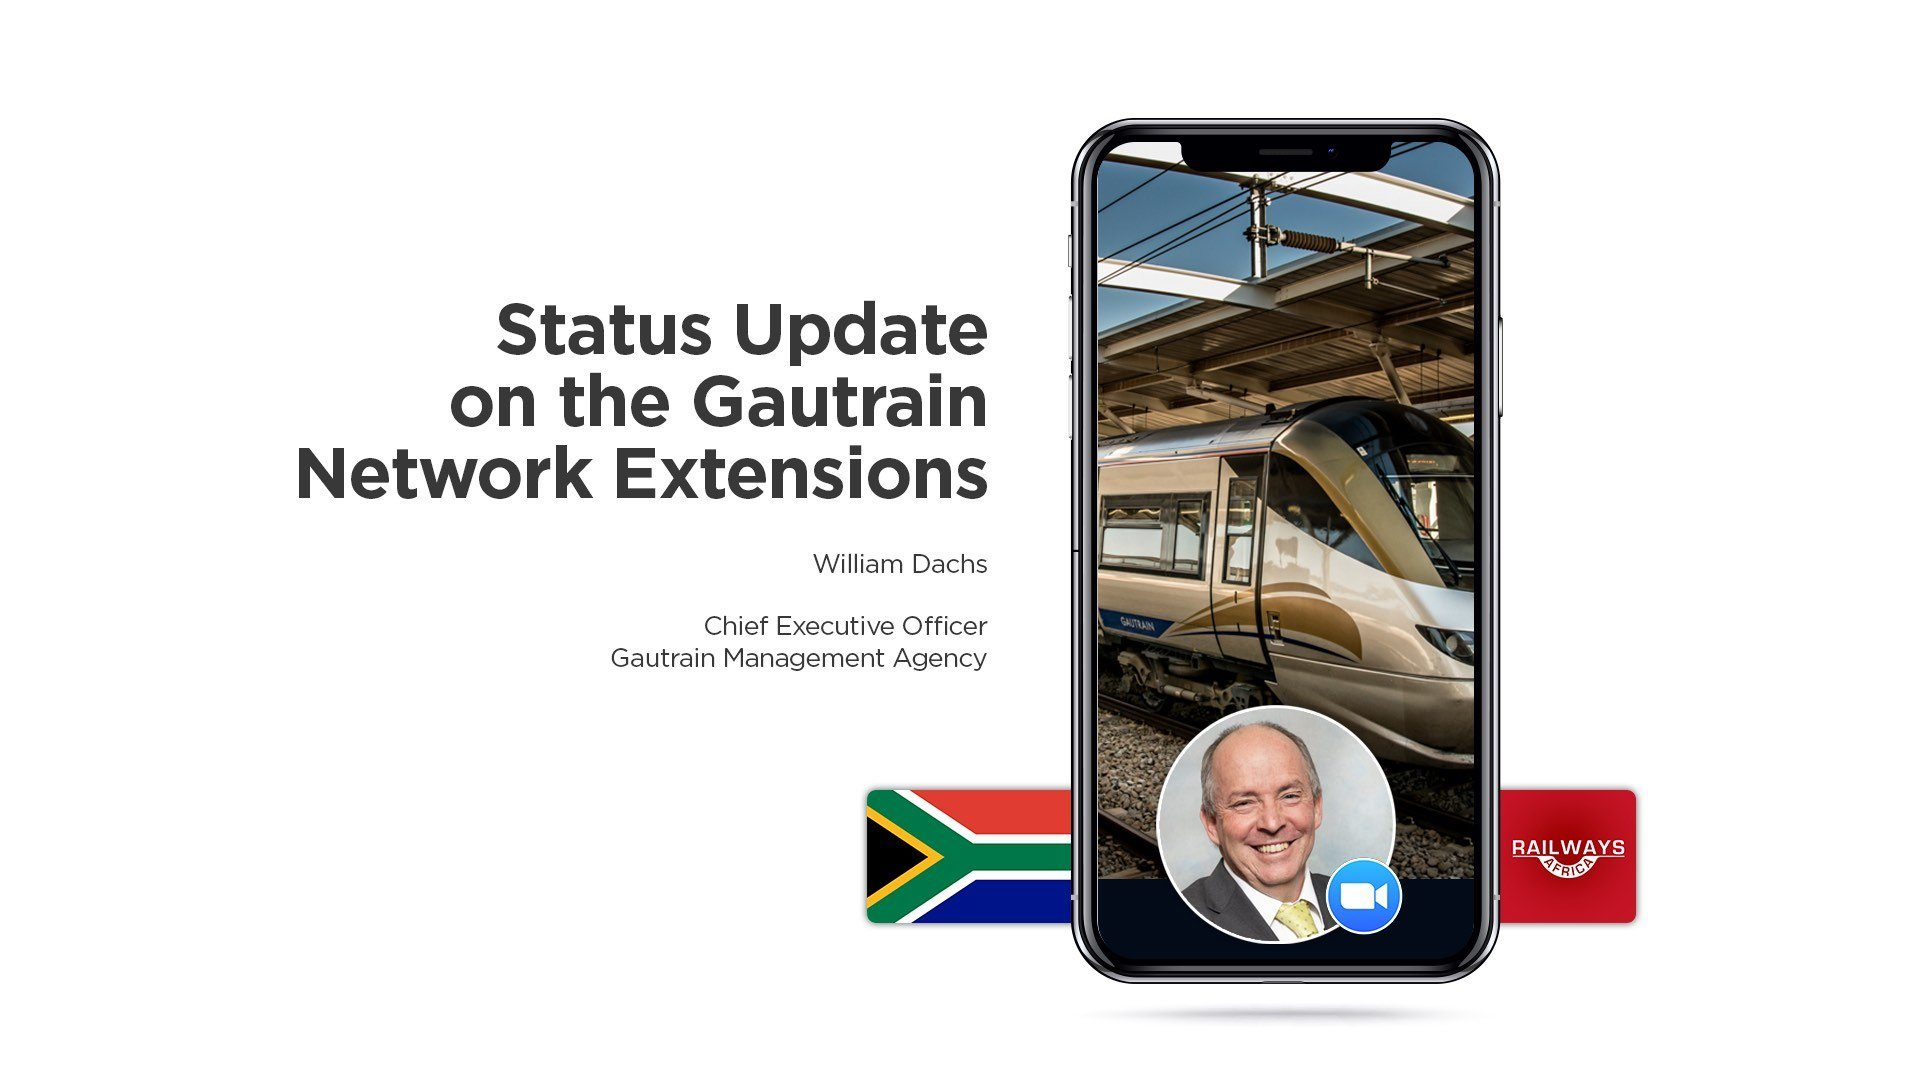 Status Update On The Gautrain Network Extensions